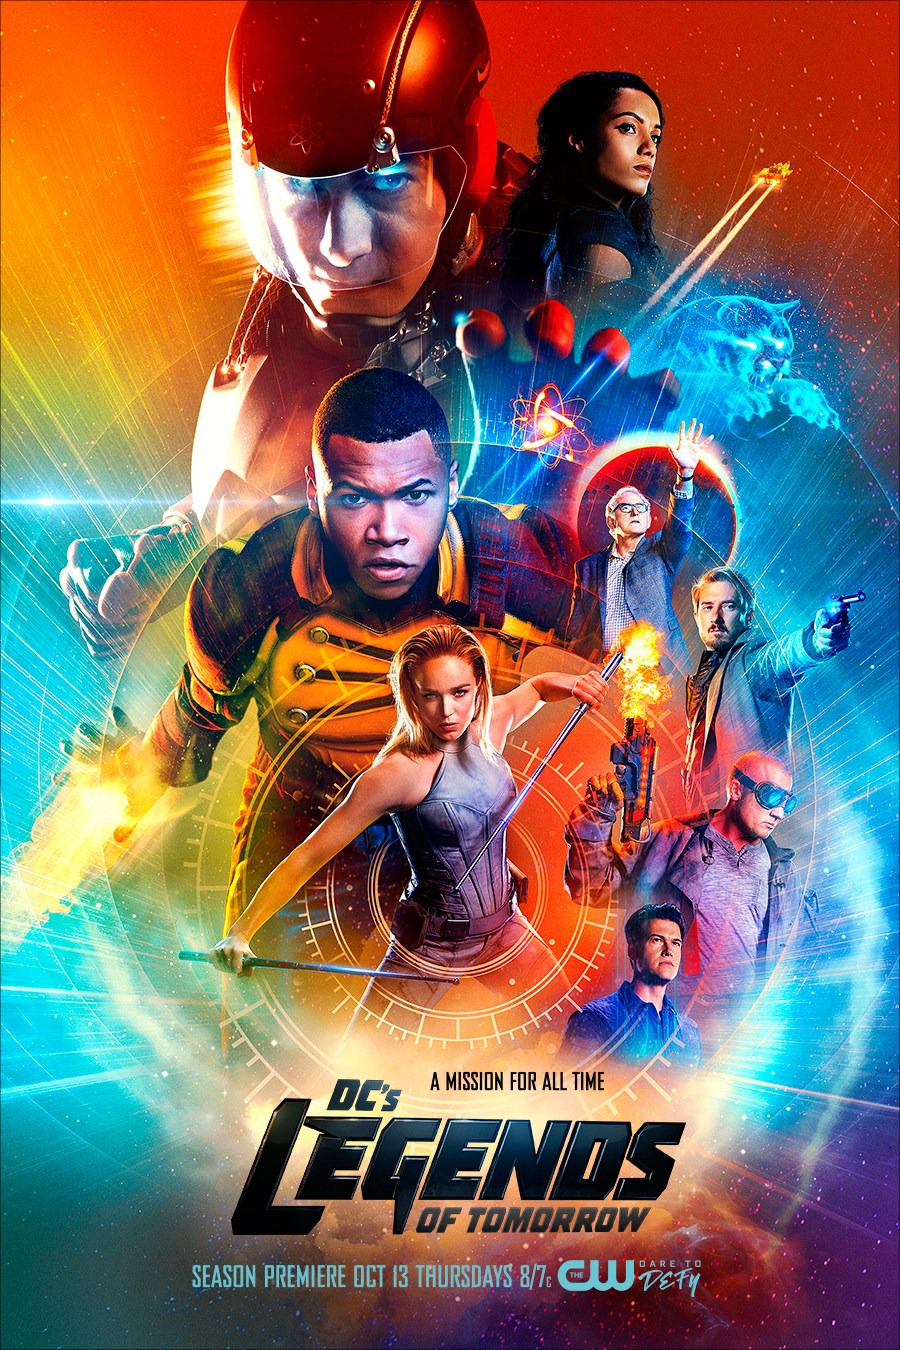 Image result for legends of tomorrow season 2 blu ray